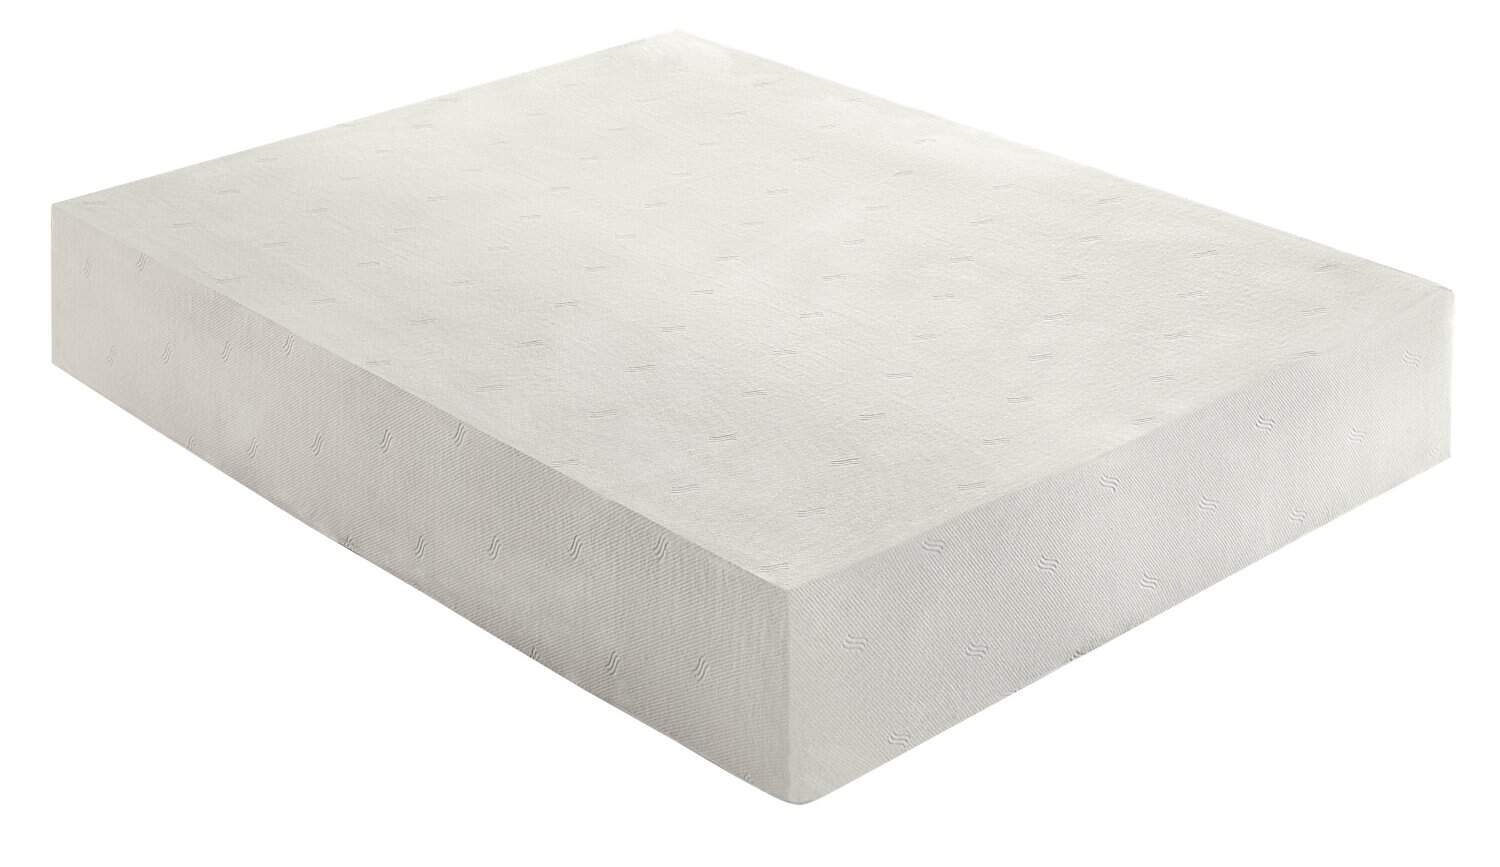 Sleep Innovations 12-Inch SureTemp Memory Foam Mattress